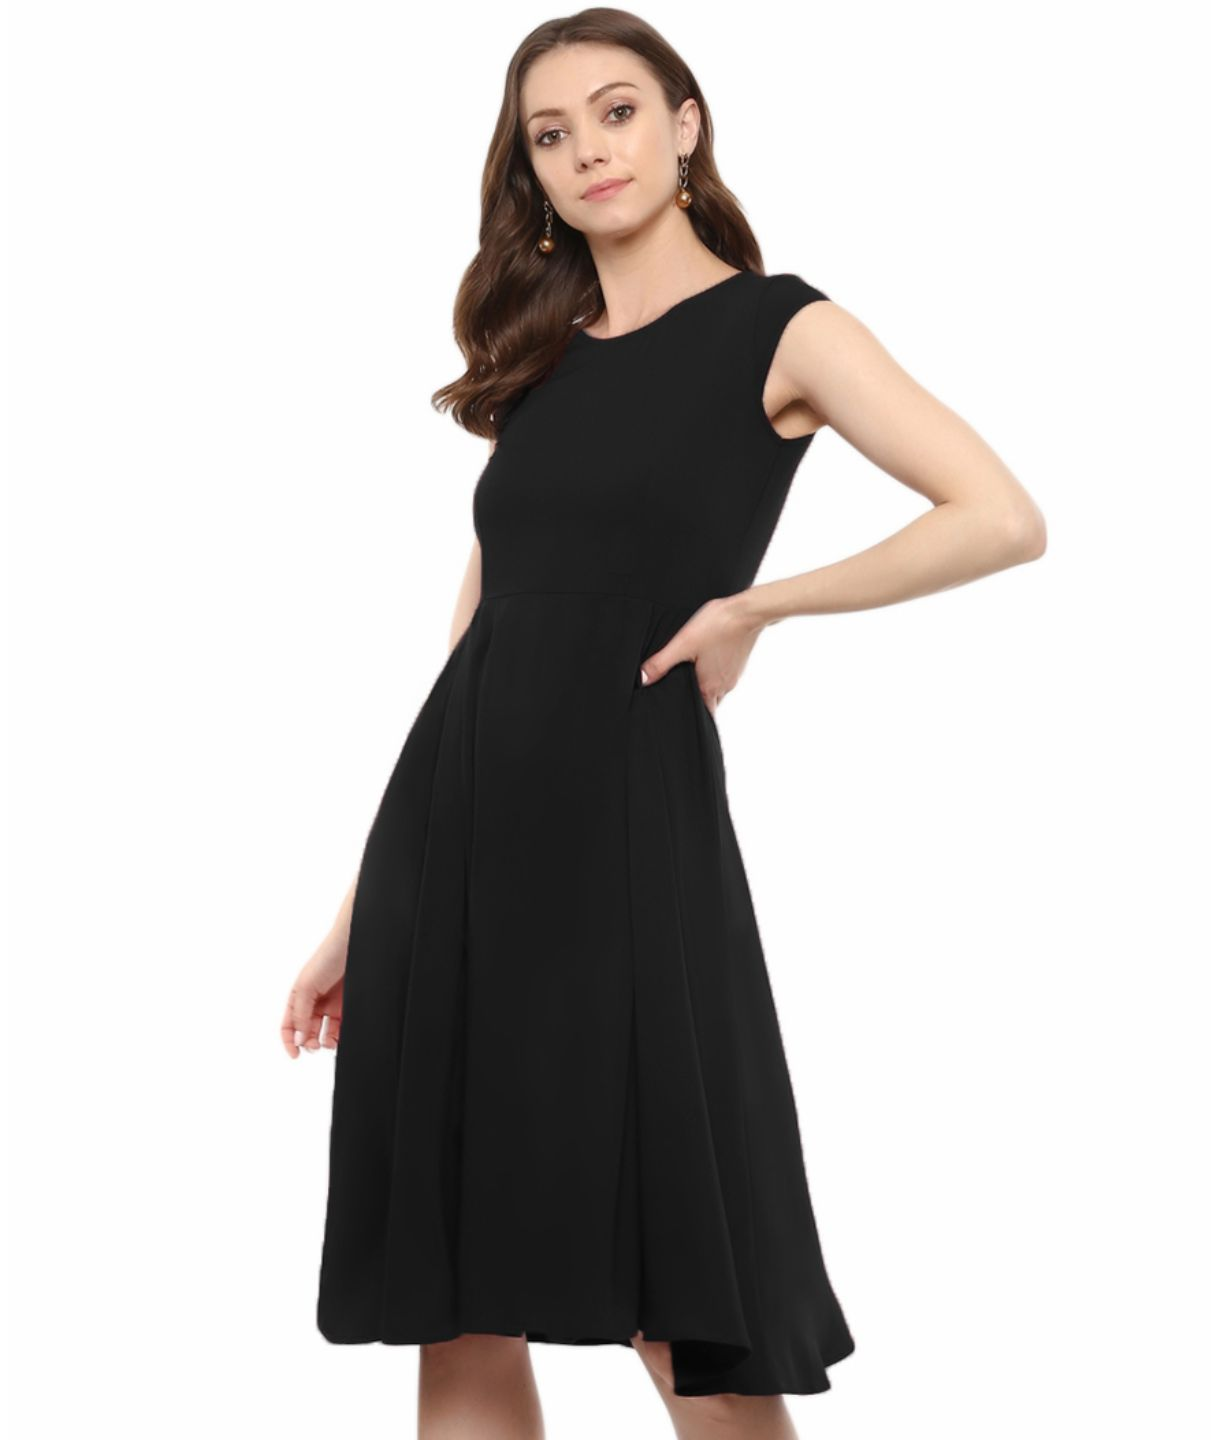 Uptownie Plus Black Solid Cap Sleeves Skater Dress